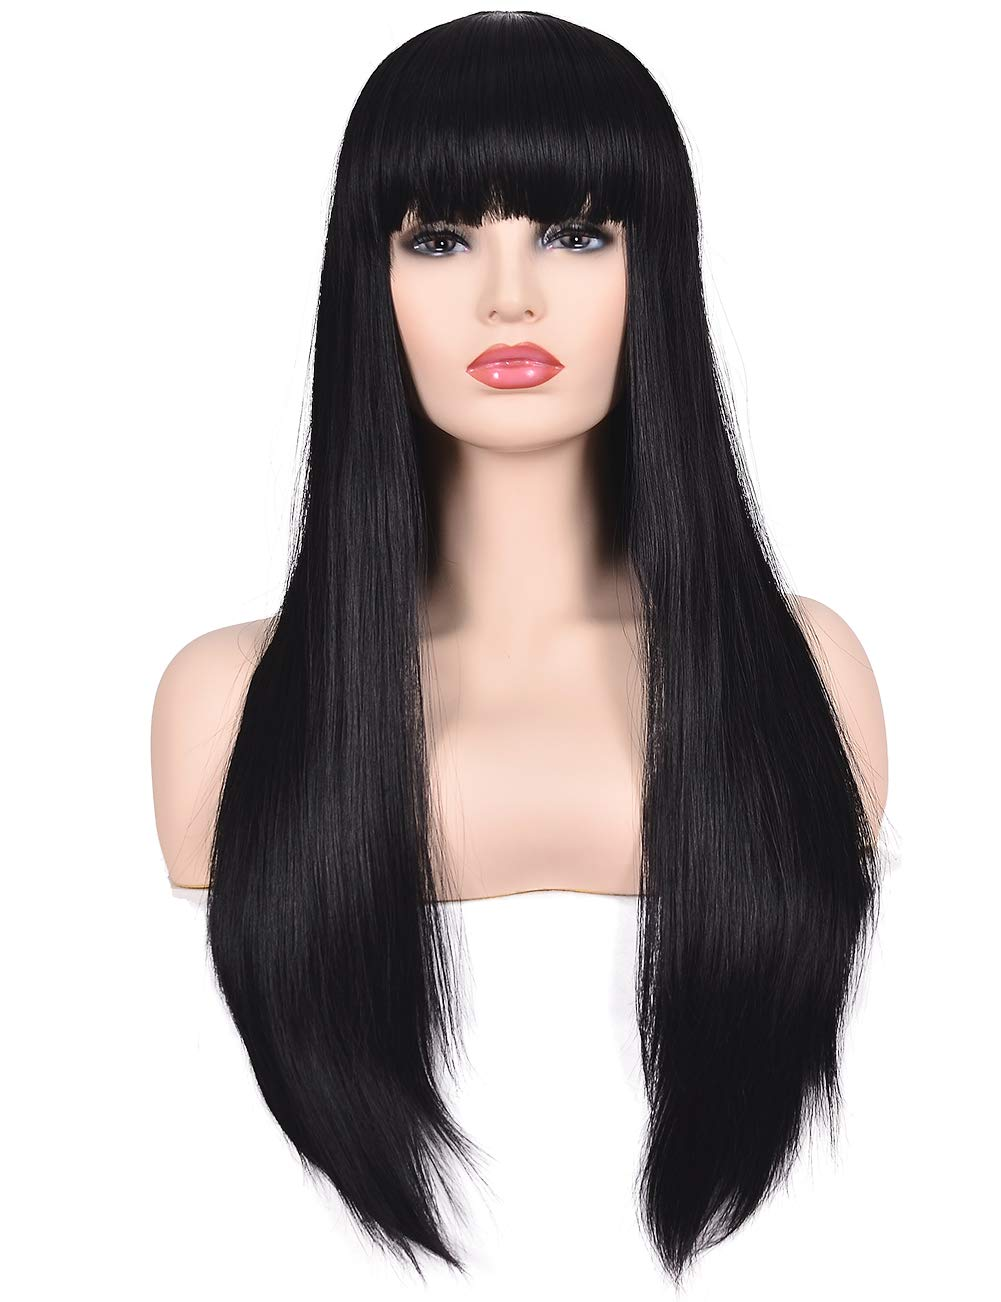 Morvally Women's 26 Long Straight Black Synthetic Resistant Hair Wigs with Bangs Natural Looking Wig for Women Halloween Cosplay